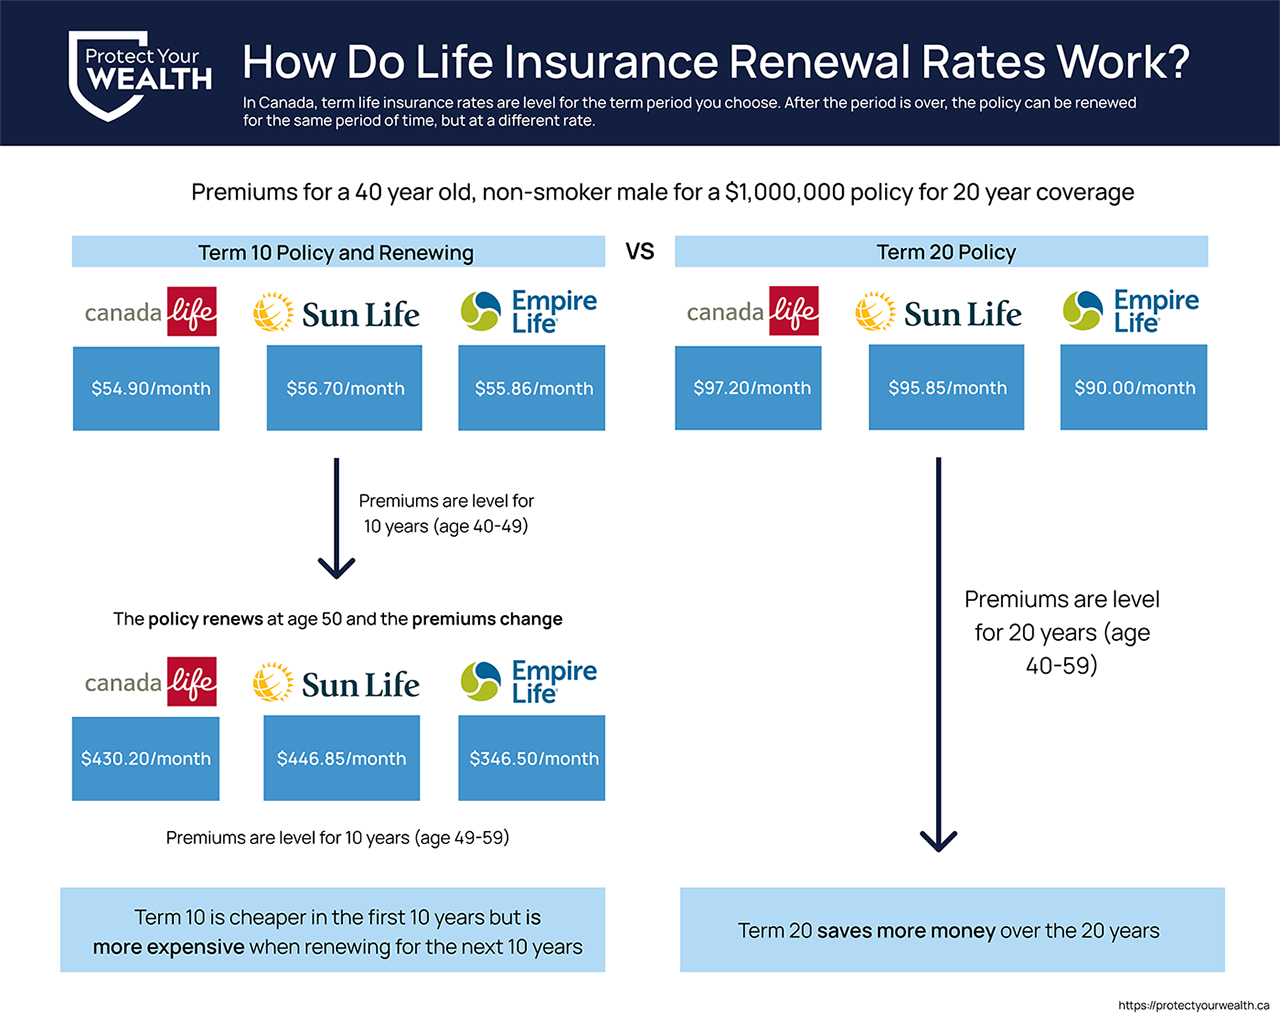 Term Life insurance premium difference after a contractual renewal for a 10 year term life insurance policy from Canada Life Insurance, Sun Life Insurance, and Empire Life Insurance.